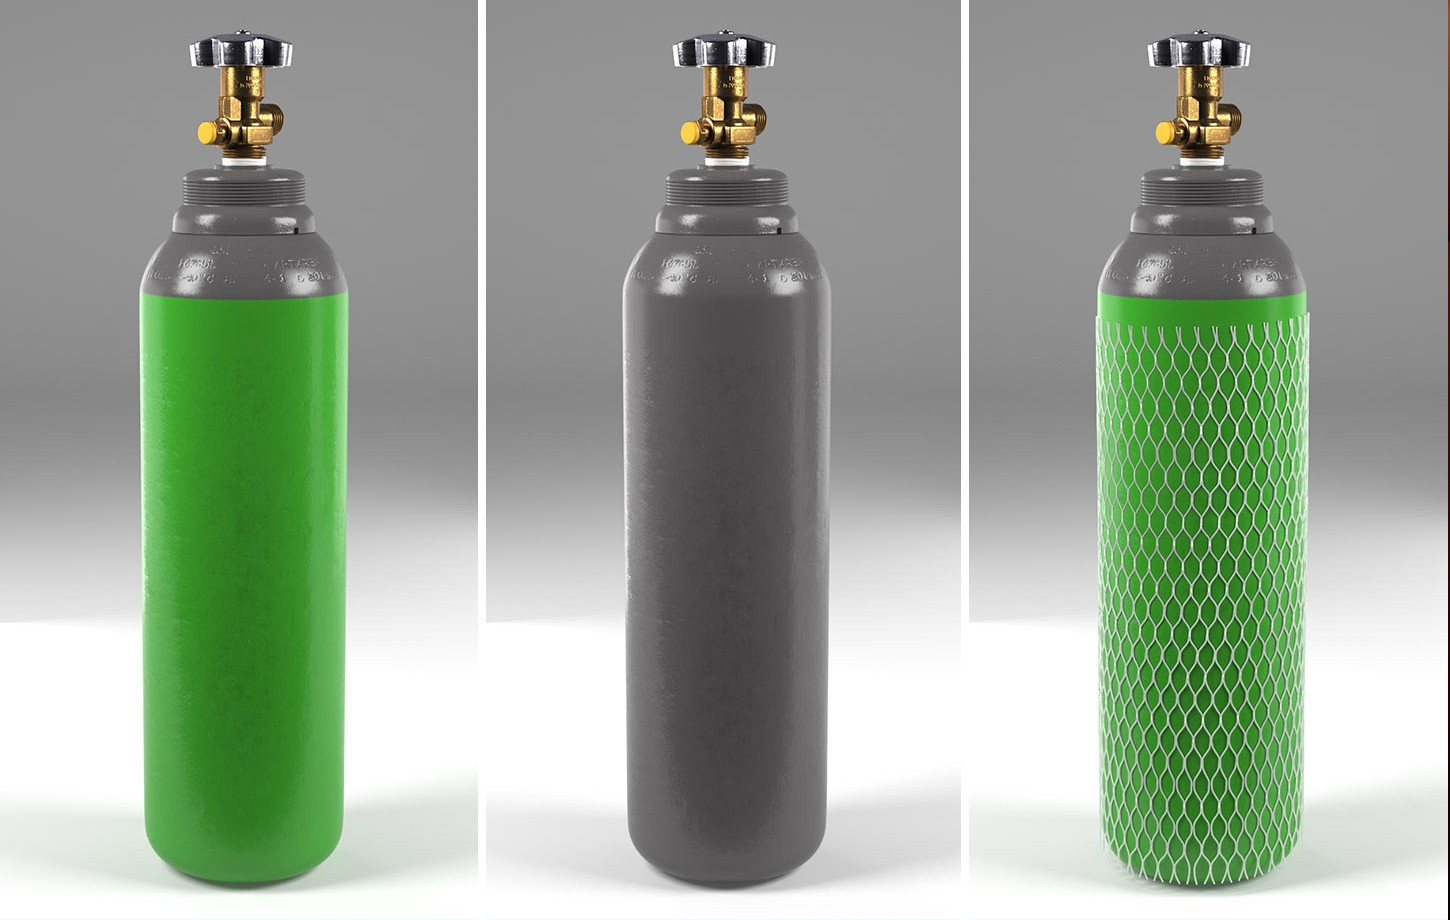 Metal bottle visualisation